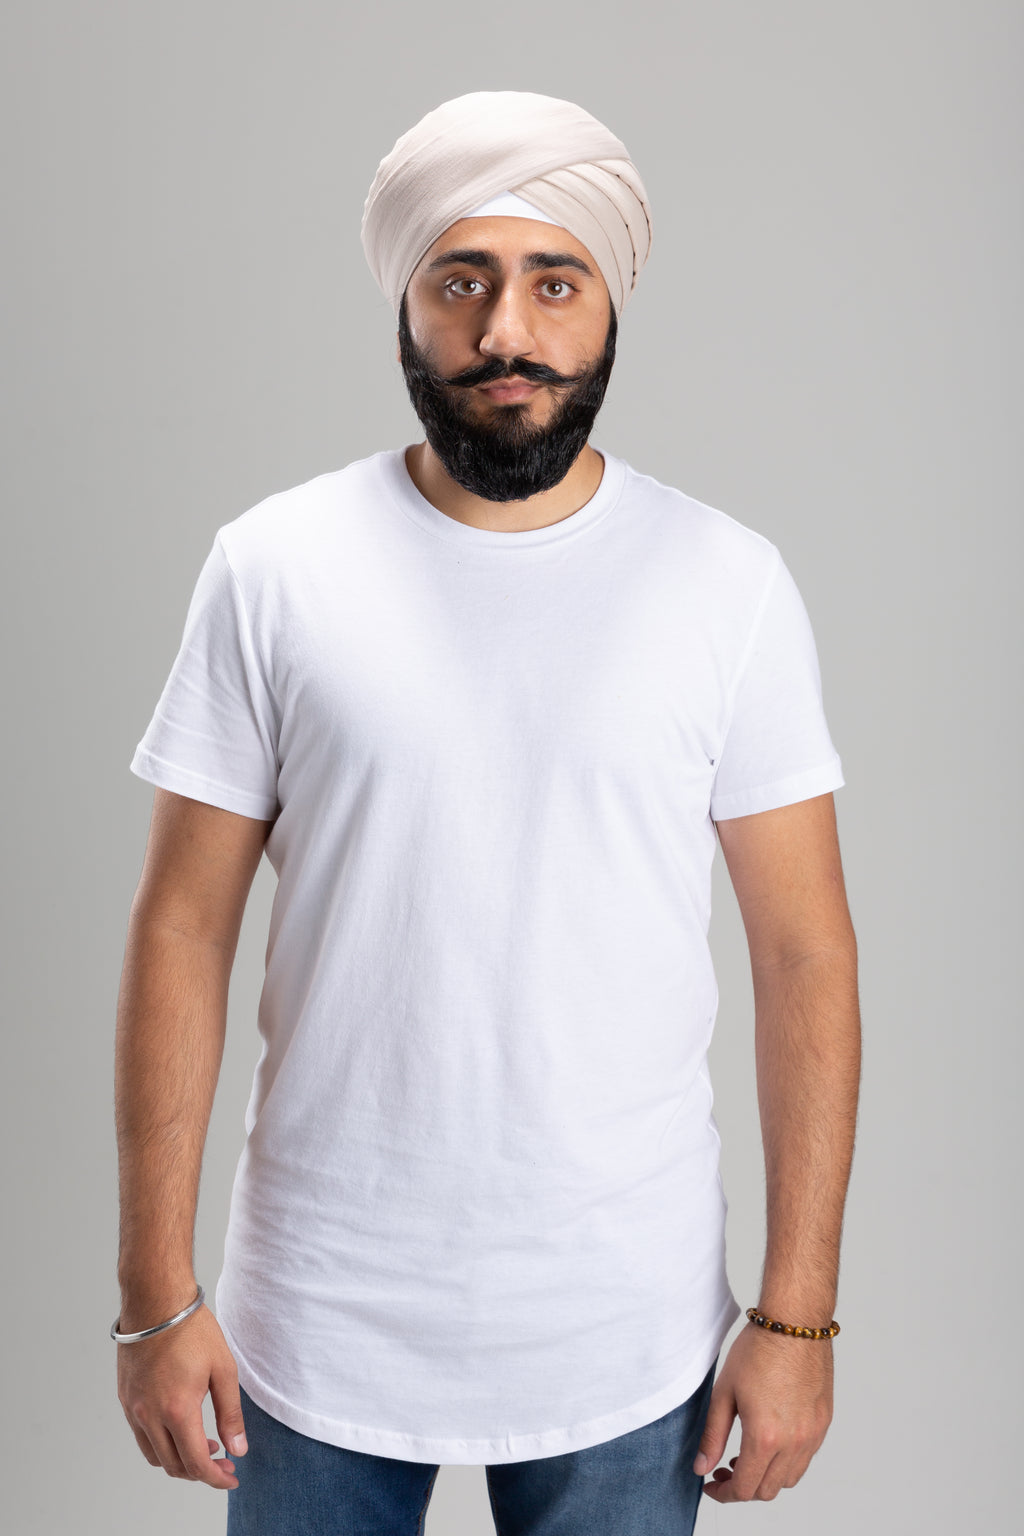 Sikh Man Wearing a Beige Turban Keski